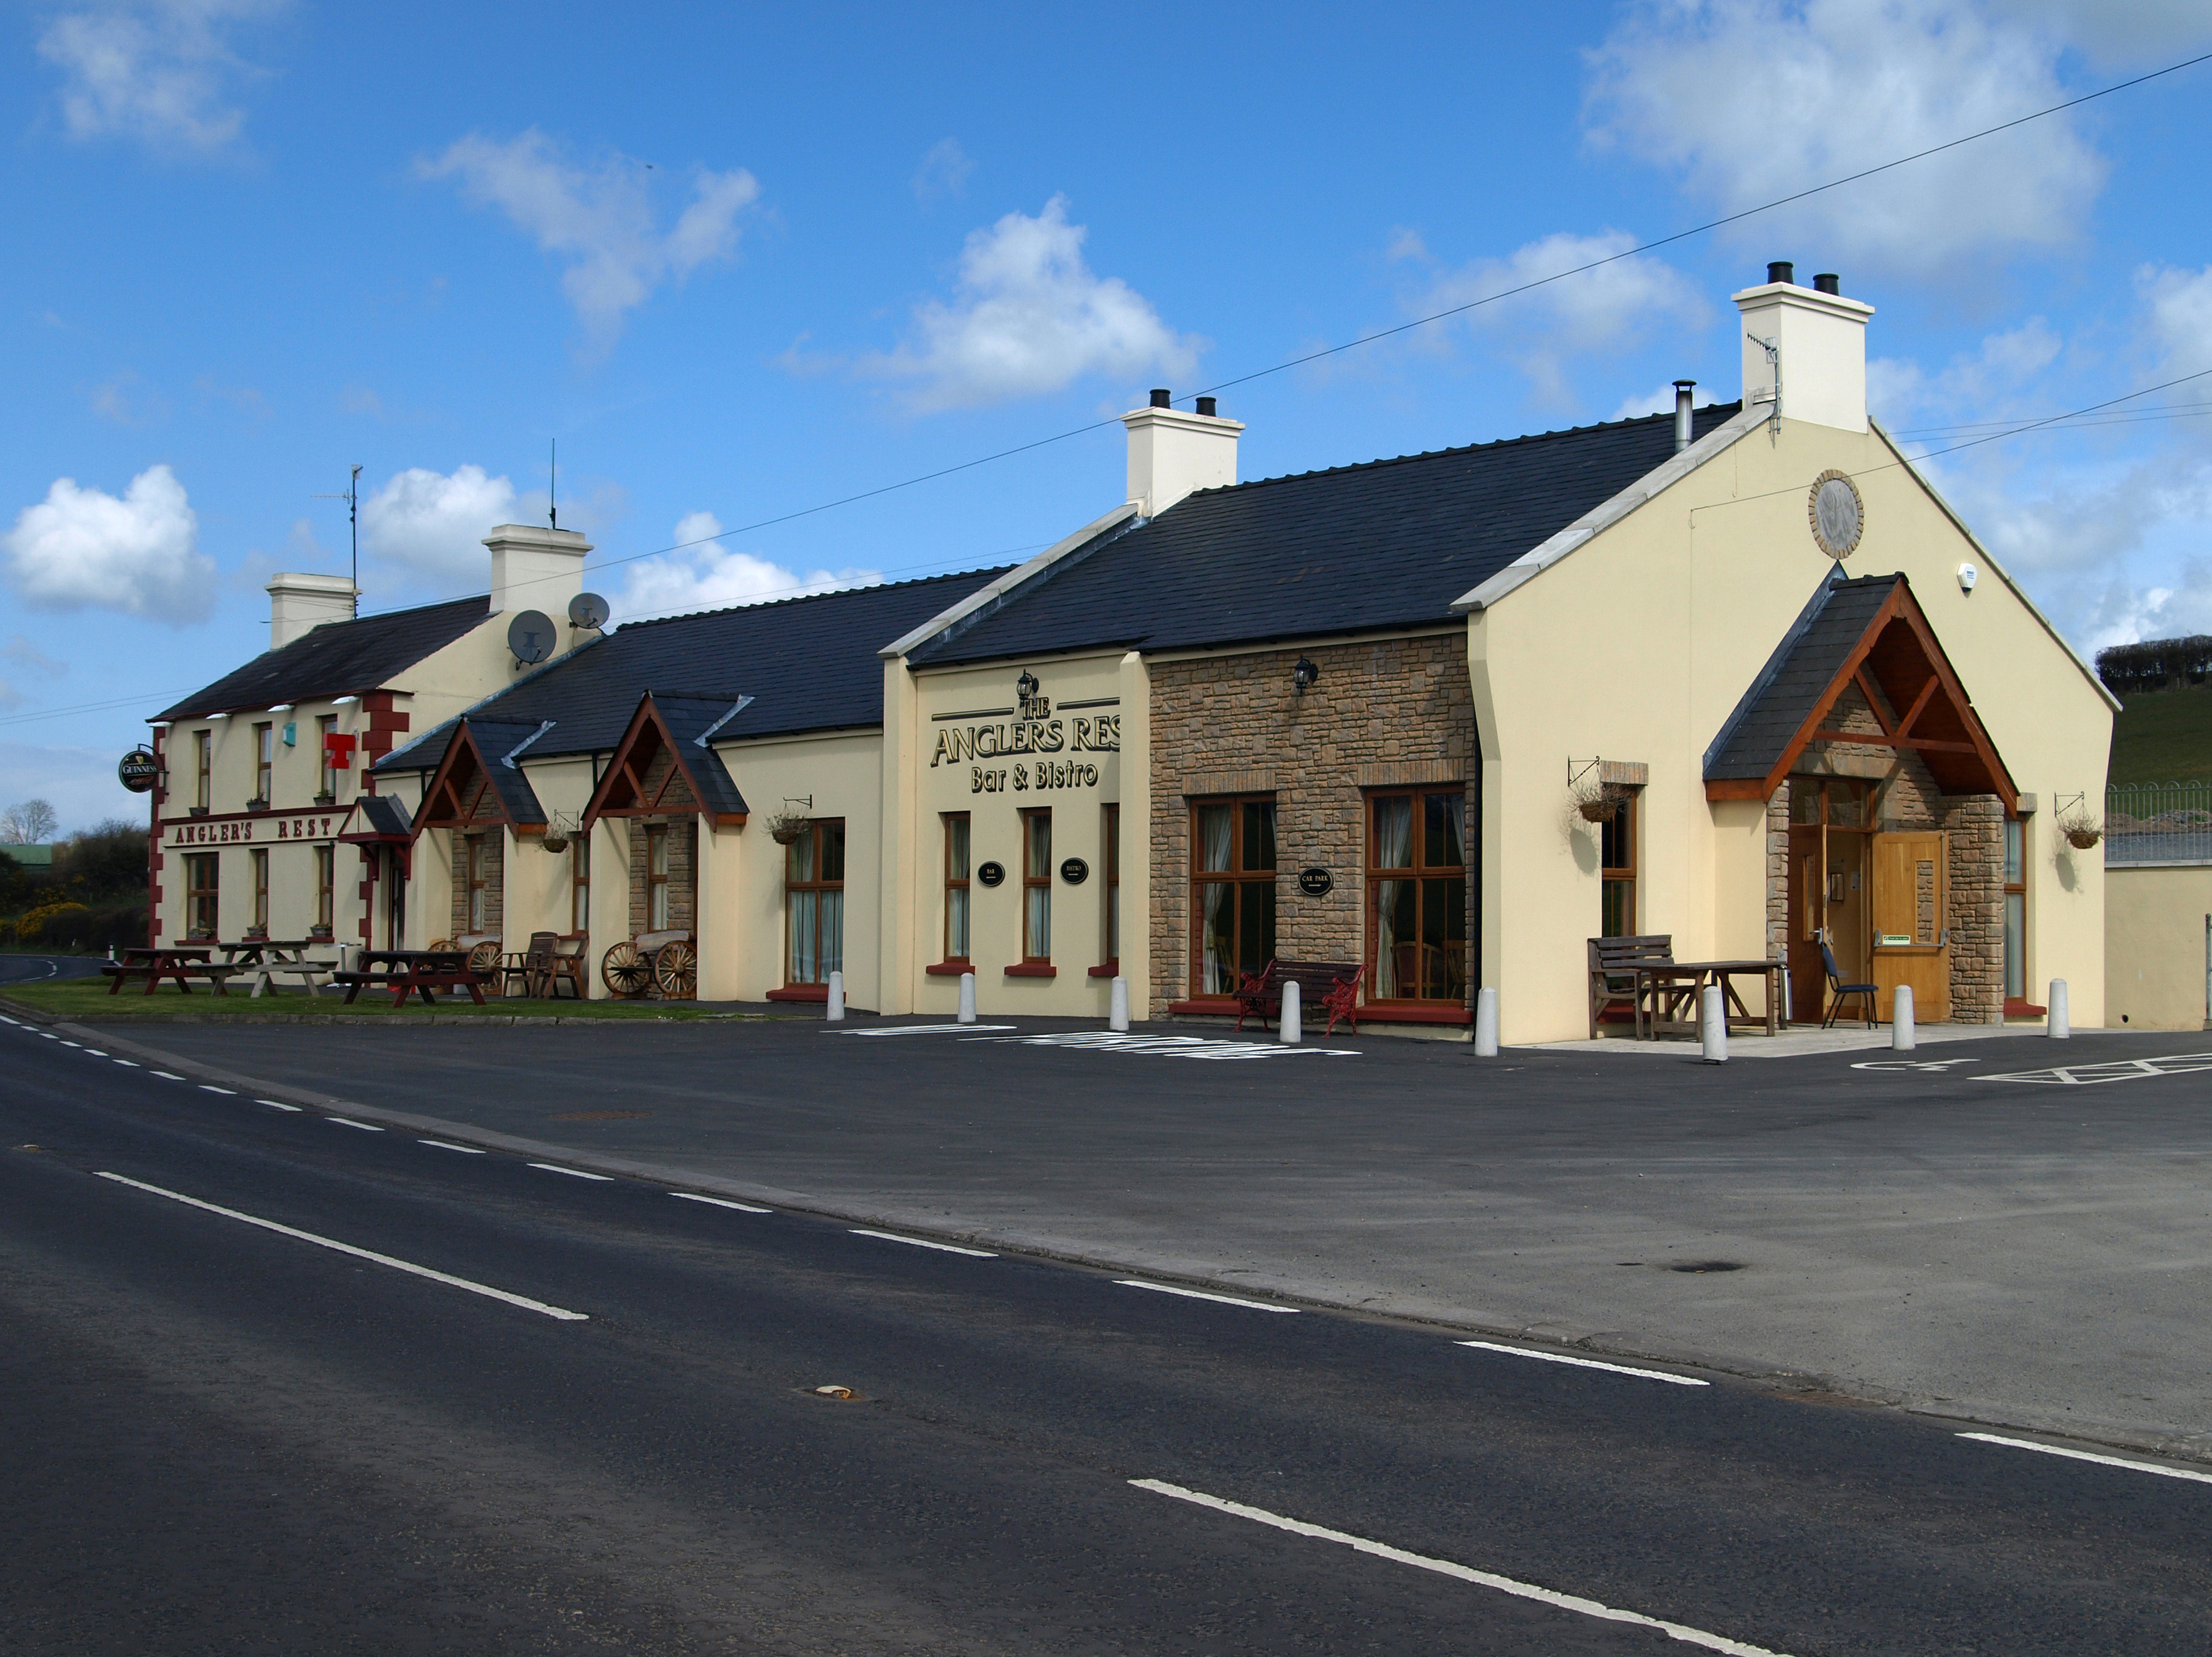 BAC Anglers Rest Bar and Bistro, Corbet, Banbridge, Co Down